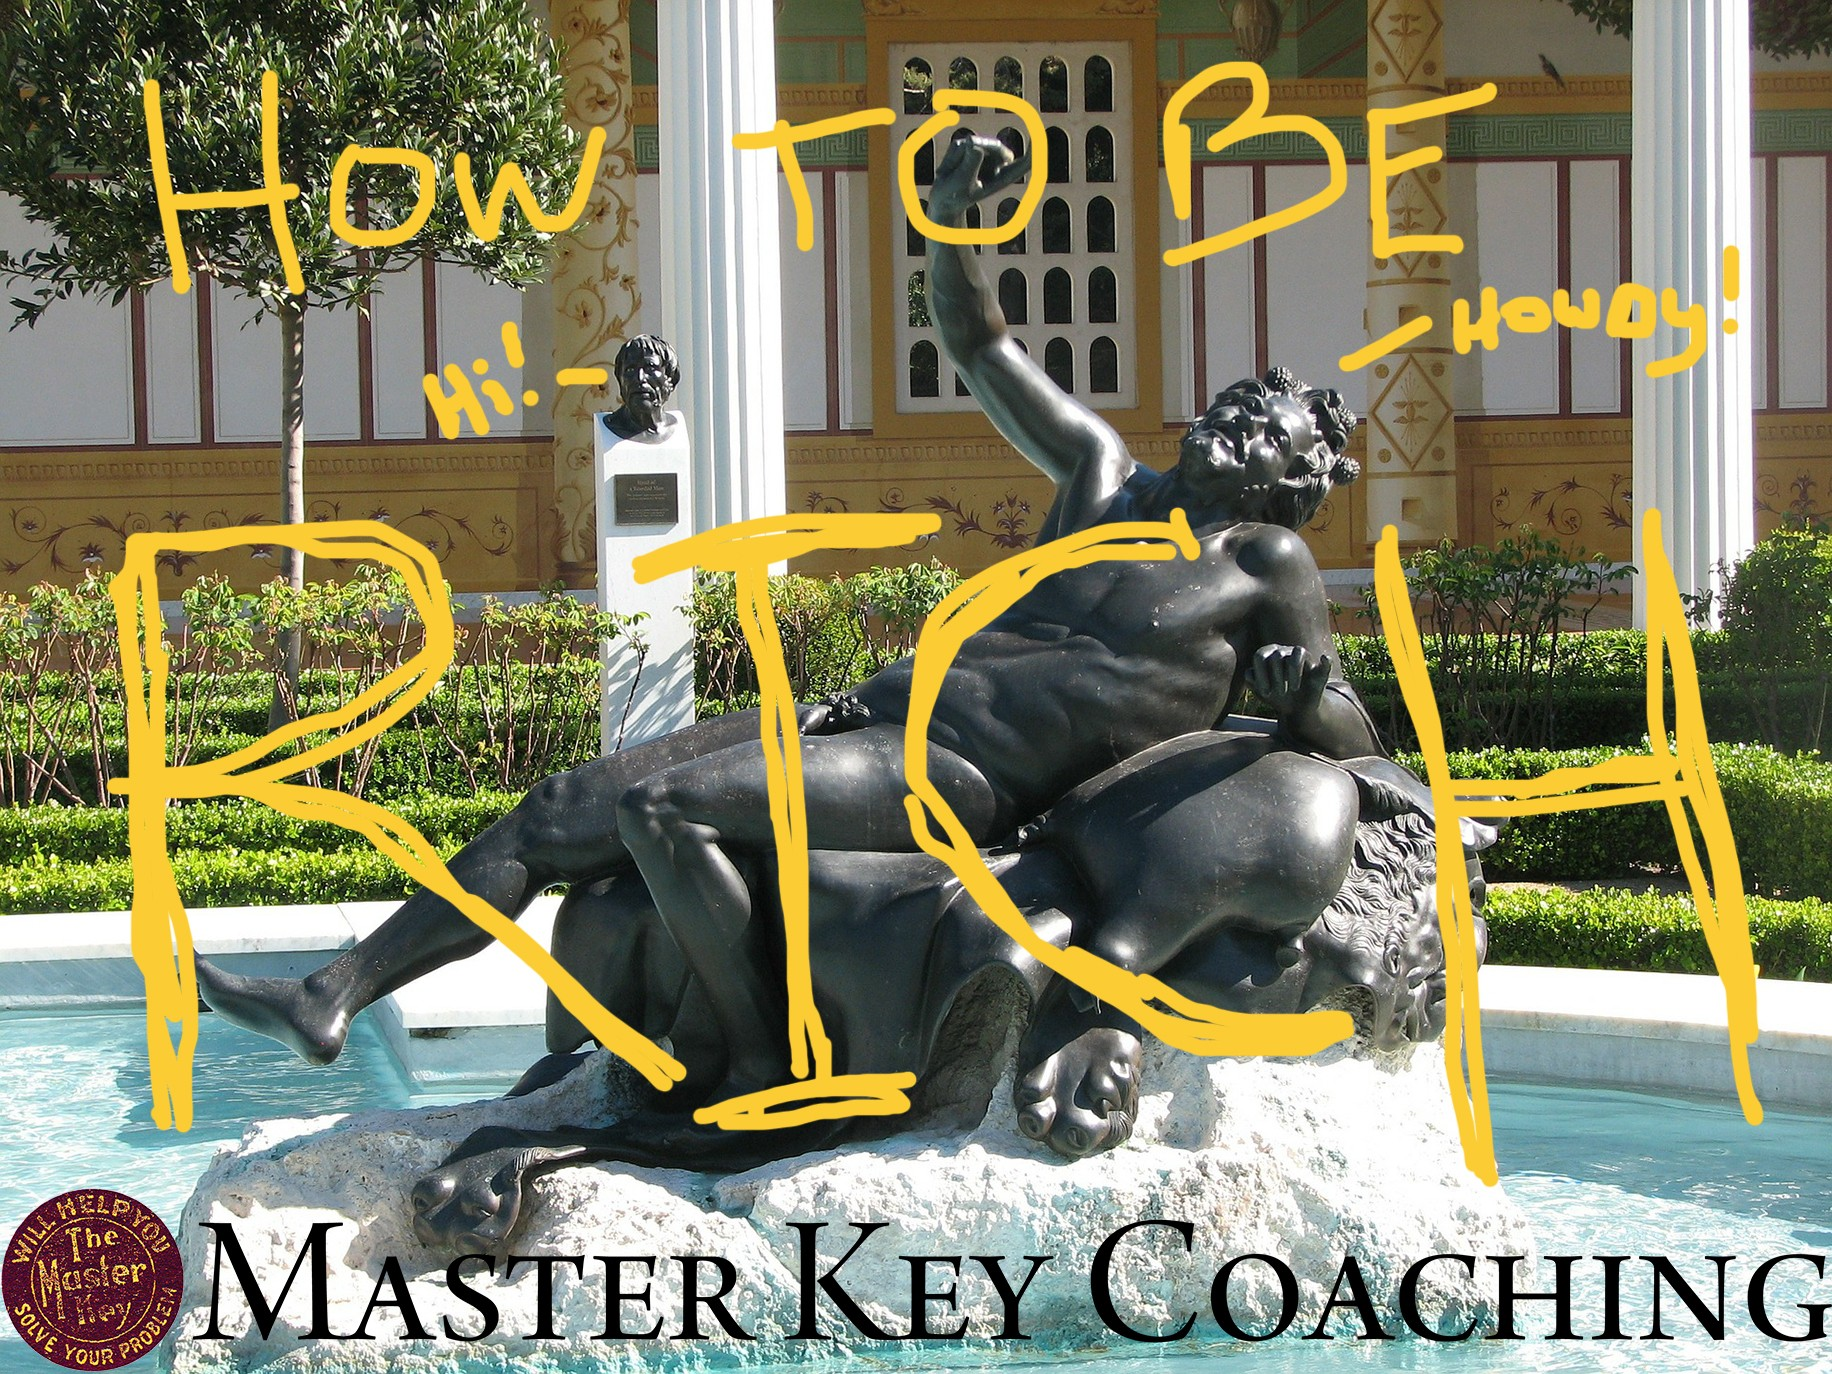 J. Paul Getty Tells You How to Be Rich (masterkeycoaching.com)